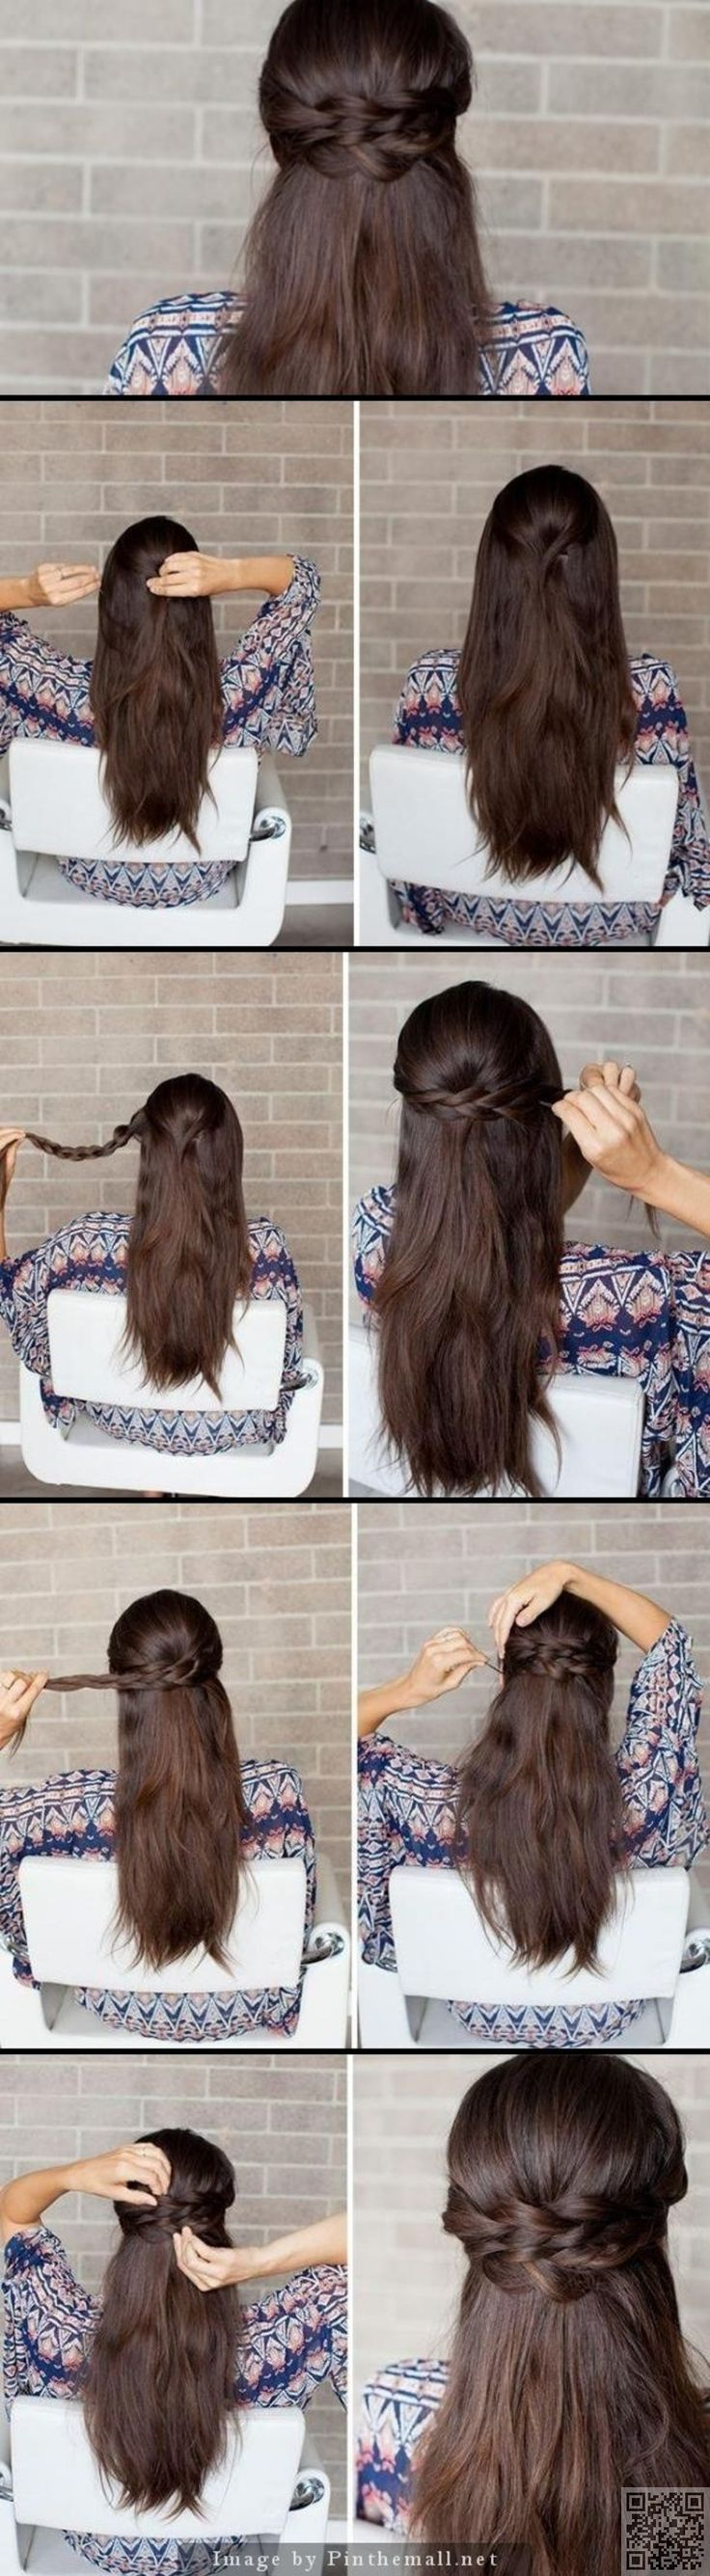 best caseys wedding images on pinterest haircut styles hair